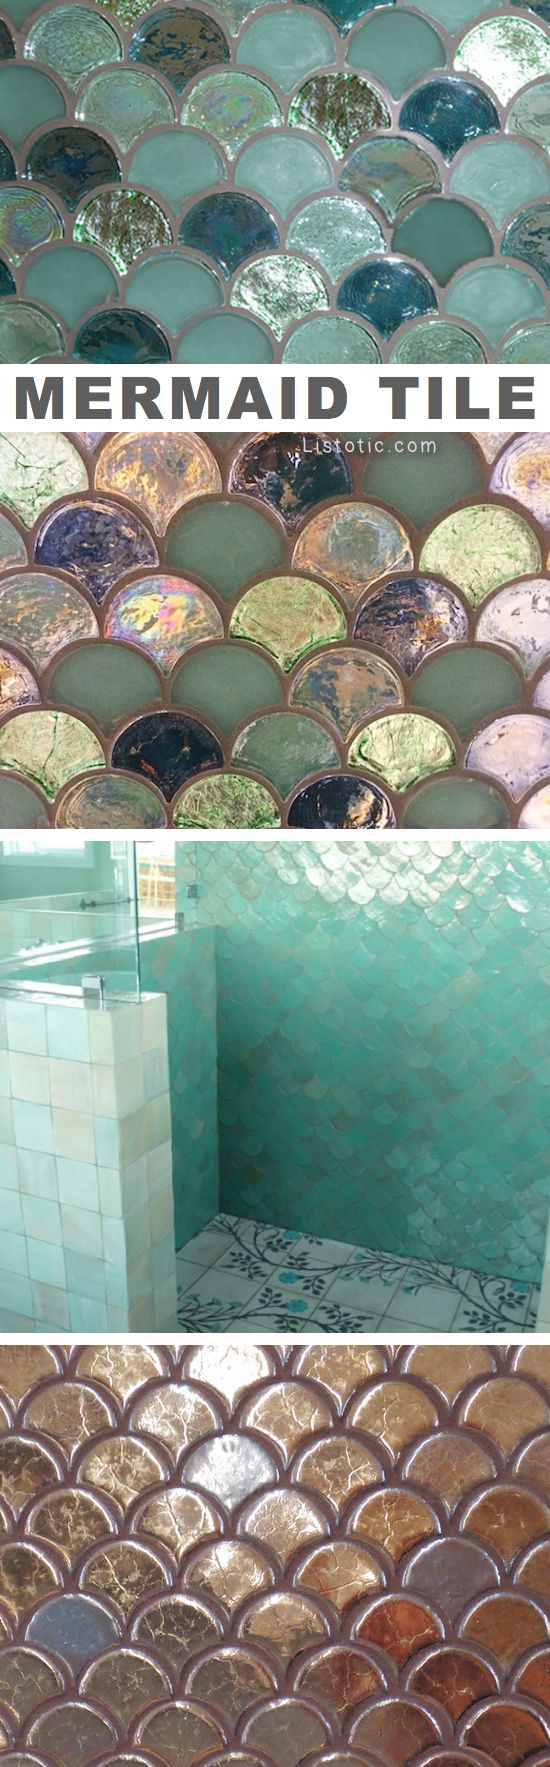 Mermaid tile ideas! Lots of gorgeous tile ideas for kitchen back ...